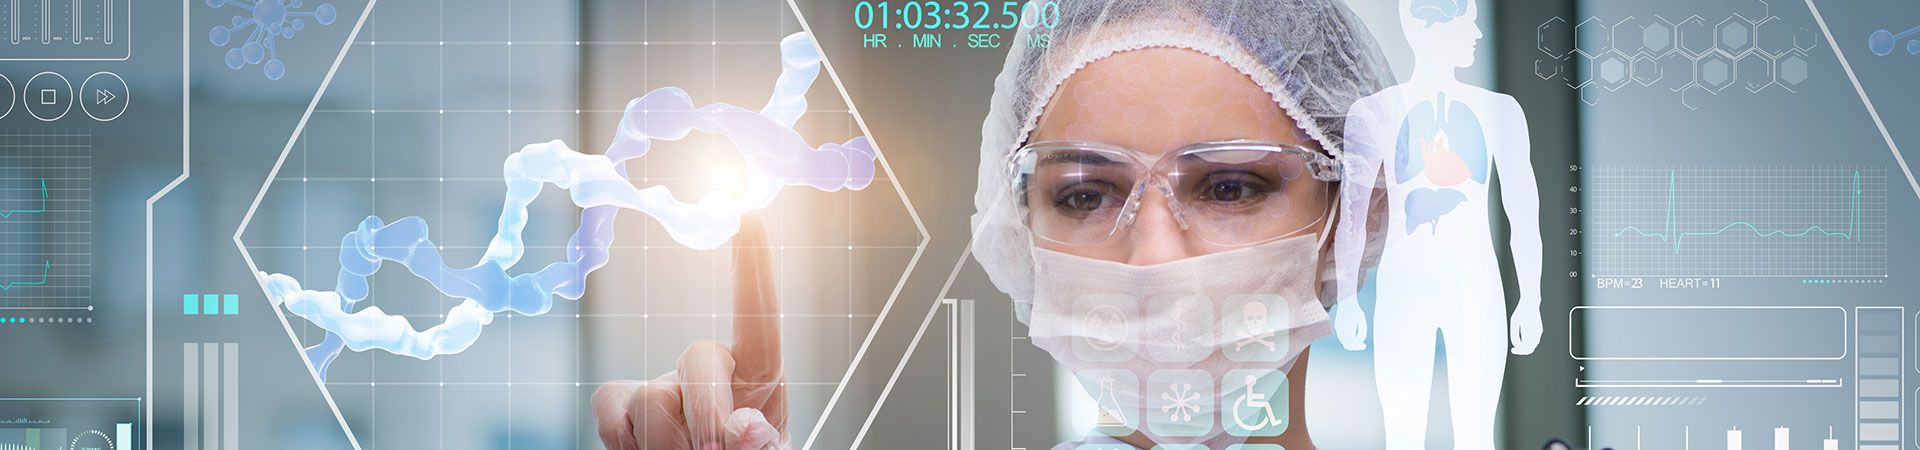 Doctor in futuristic medical concept touching display